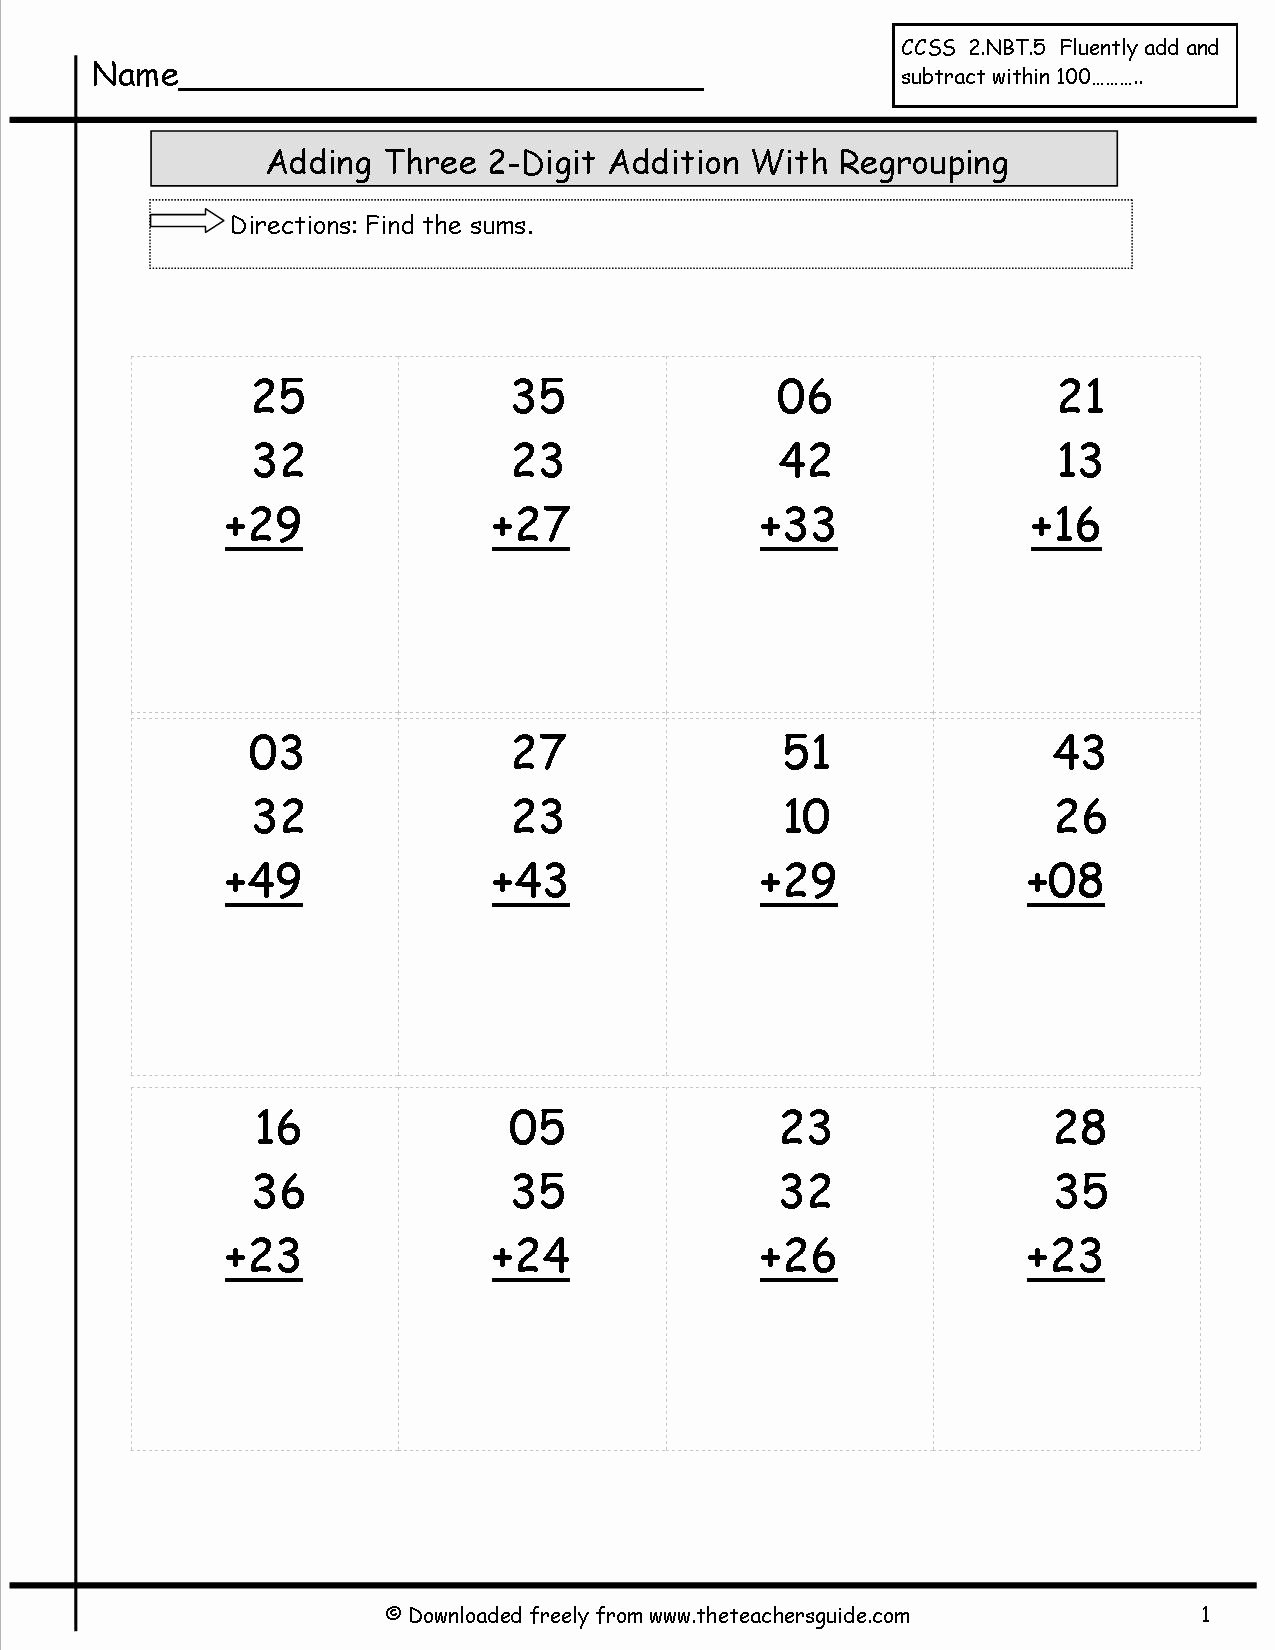 Adding Three Numbers Worksheet Beautiful Two Digit Addition Worksheets From the Teacher S Guide